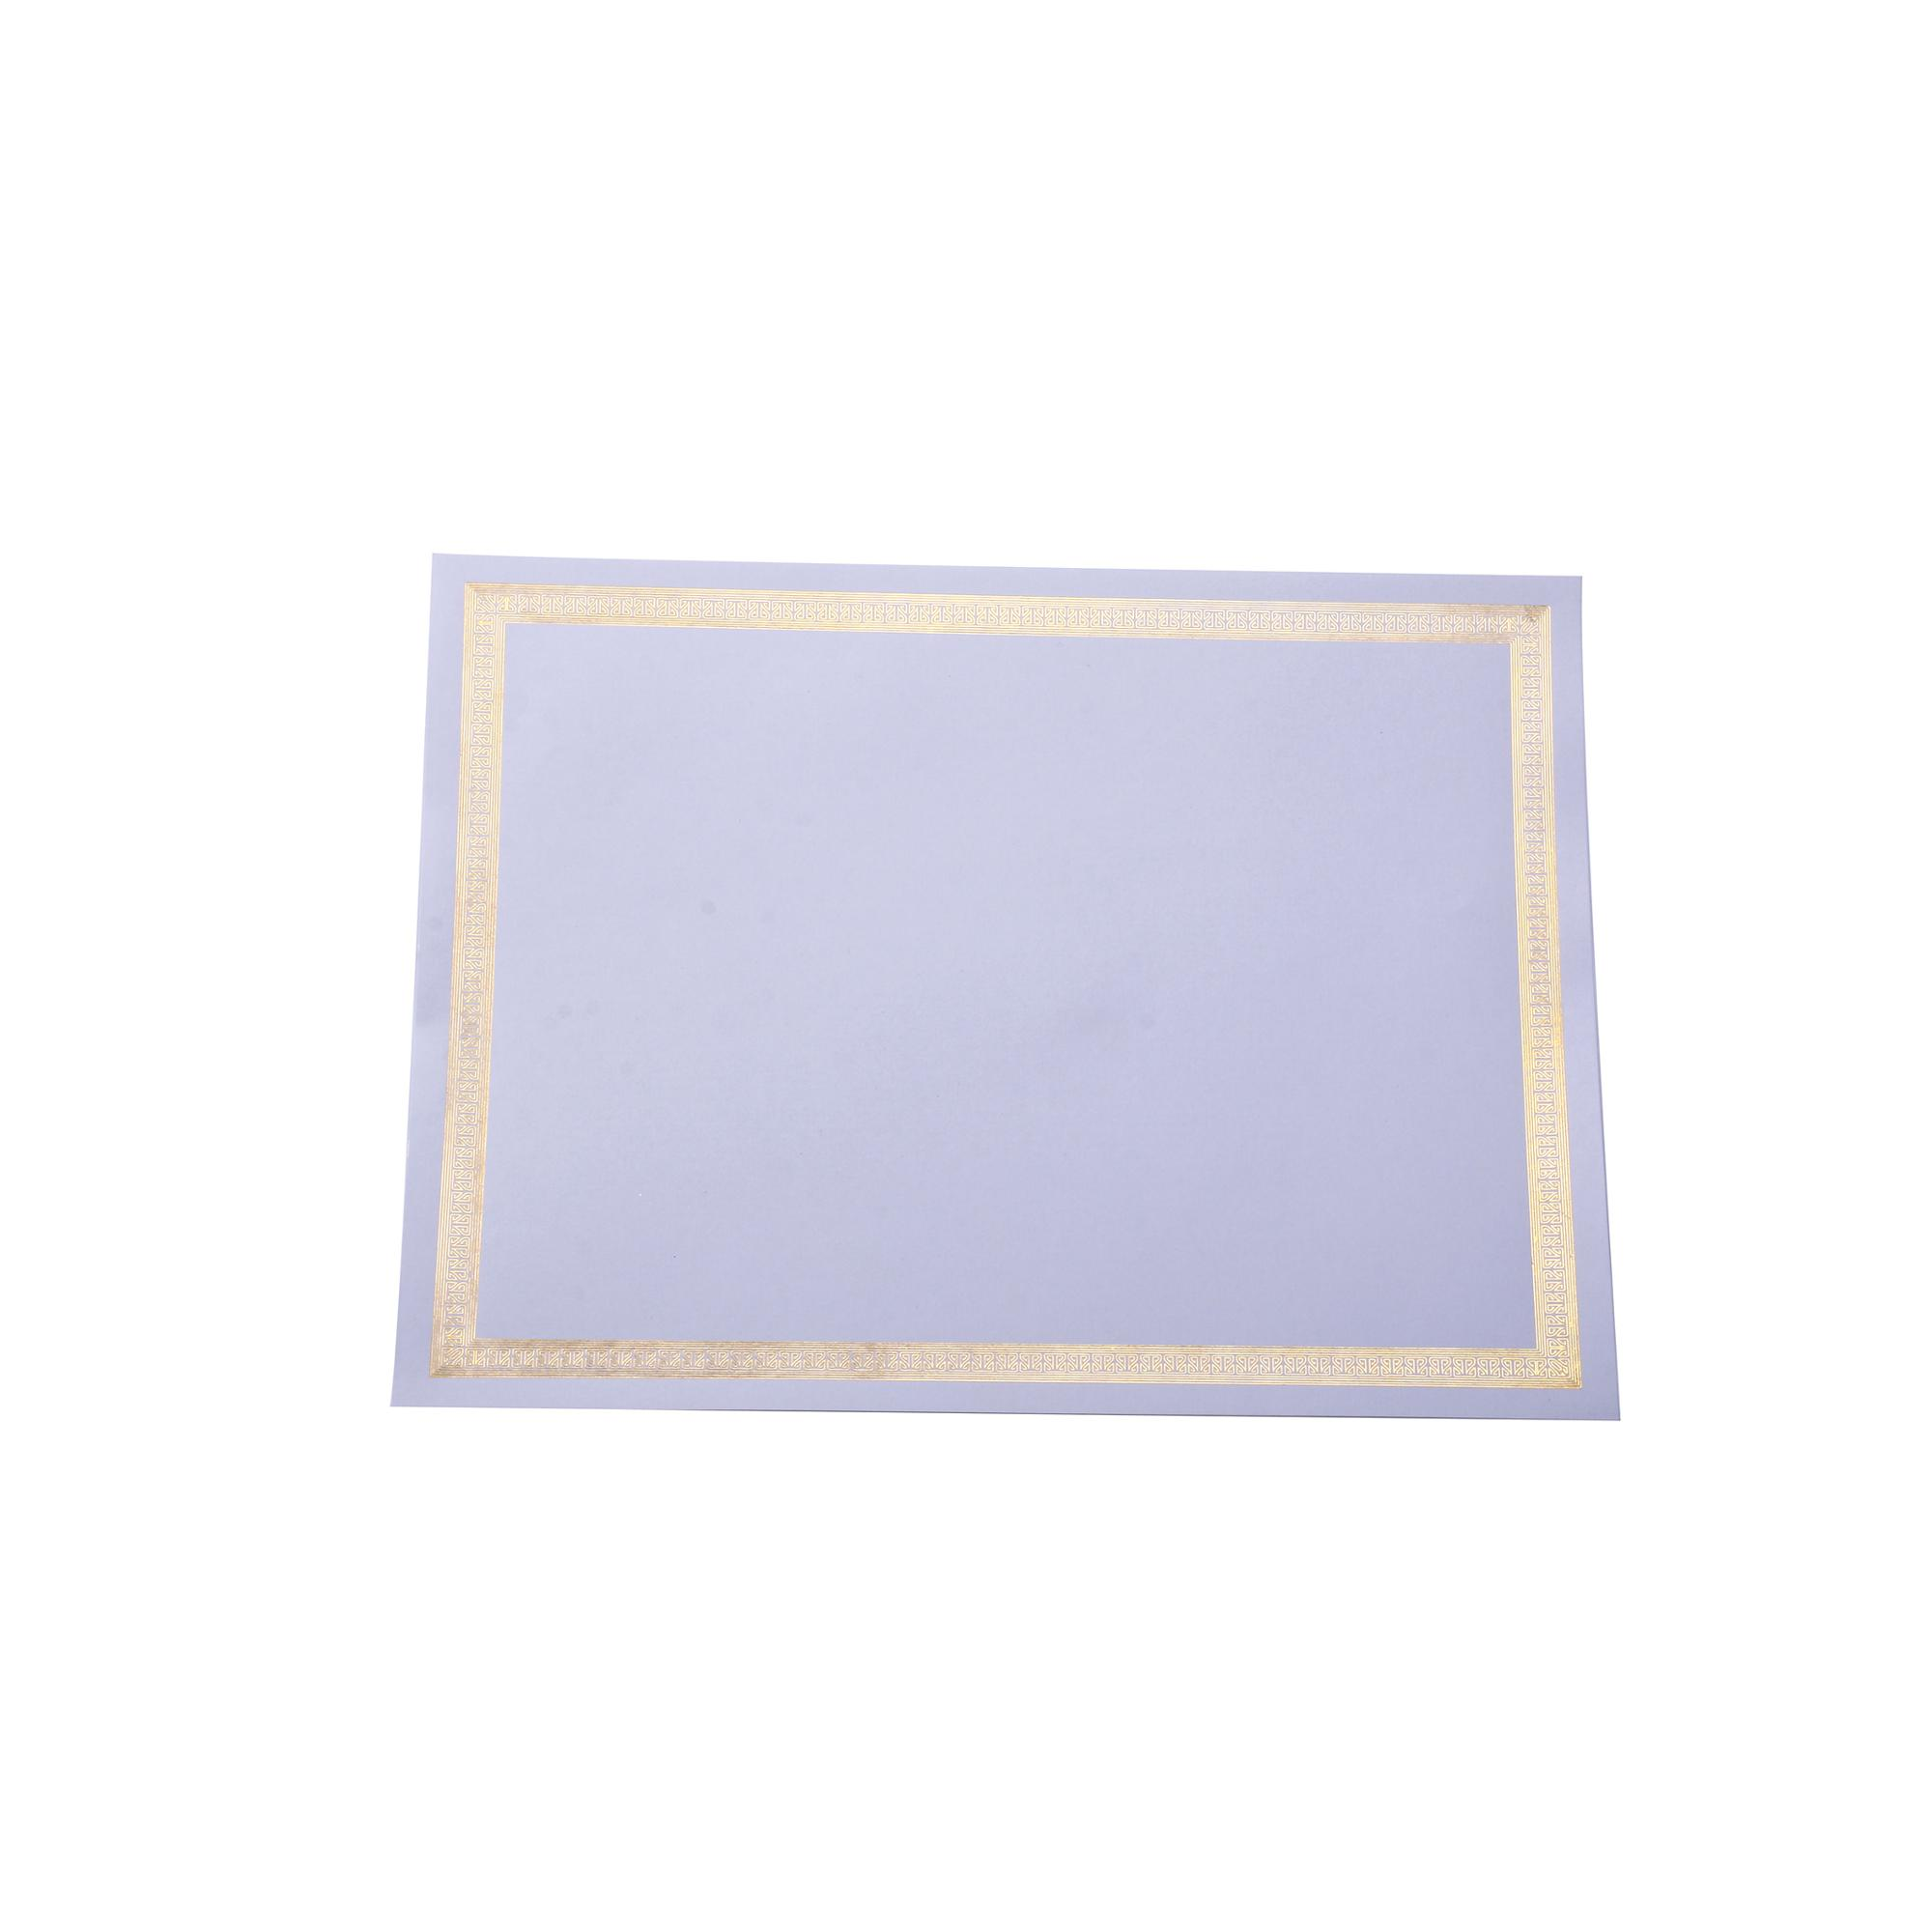 Custom cheap hot sale blank gold foil certificate <strong>printing</strong>